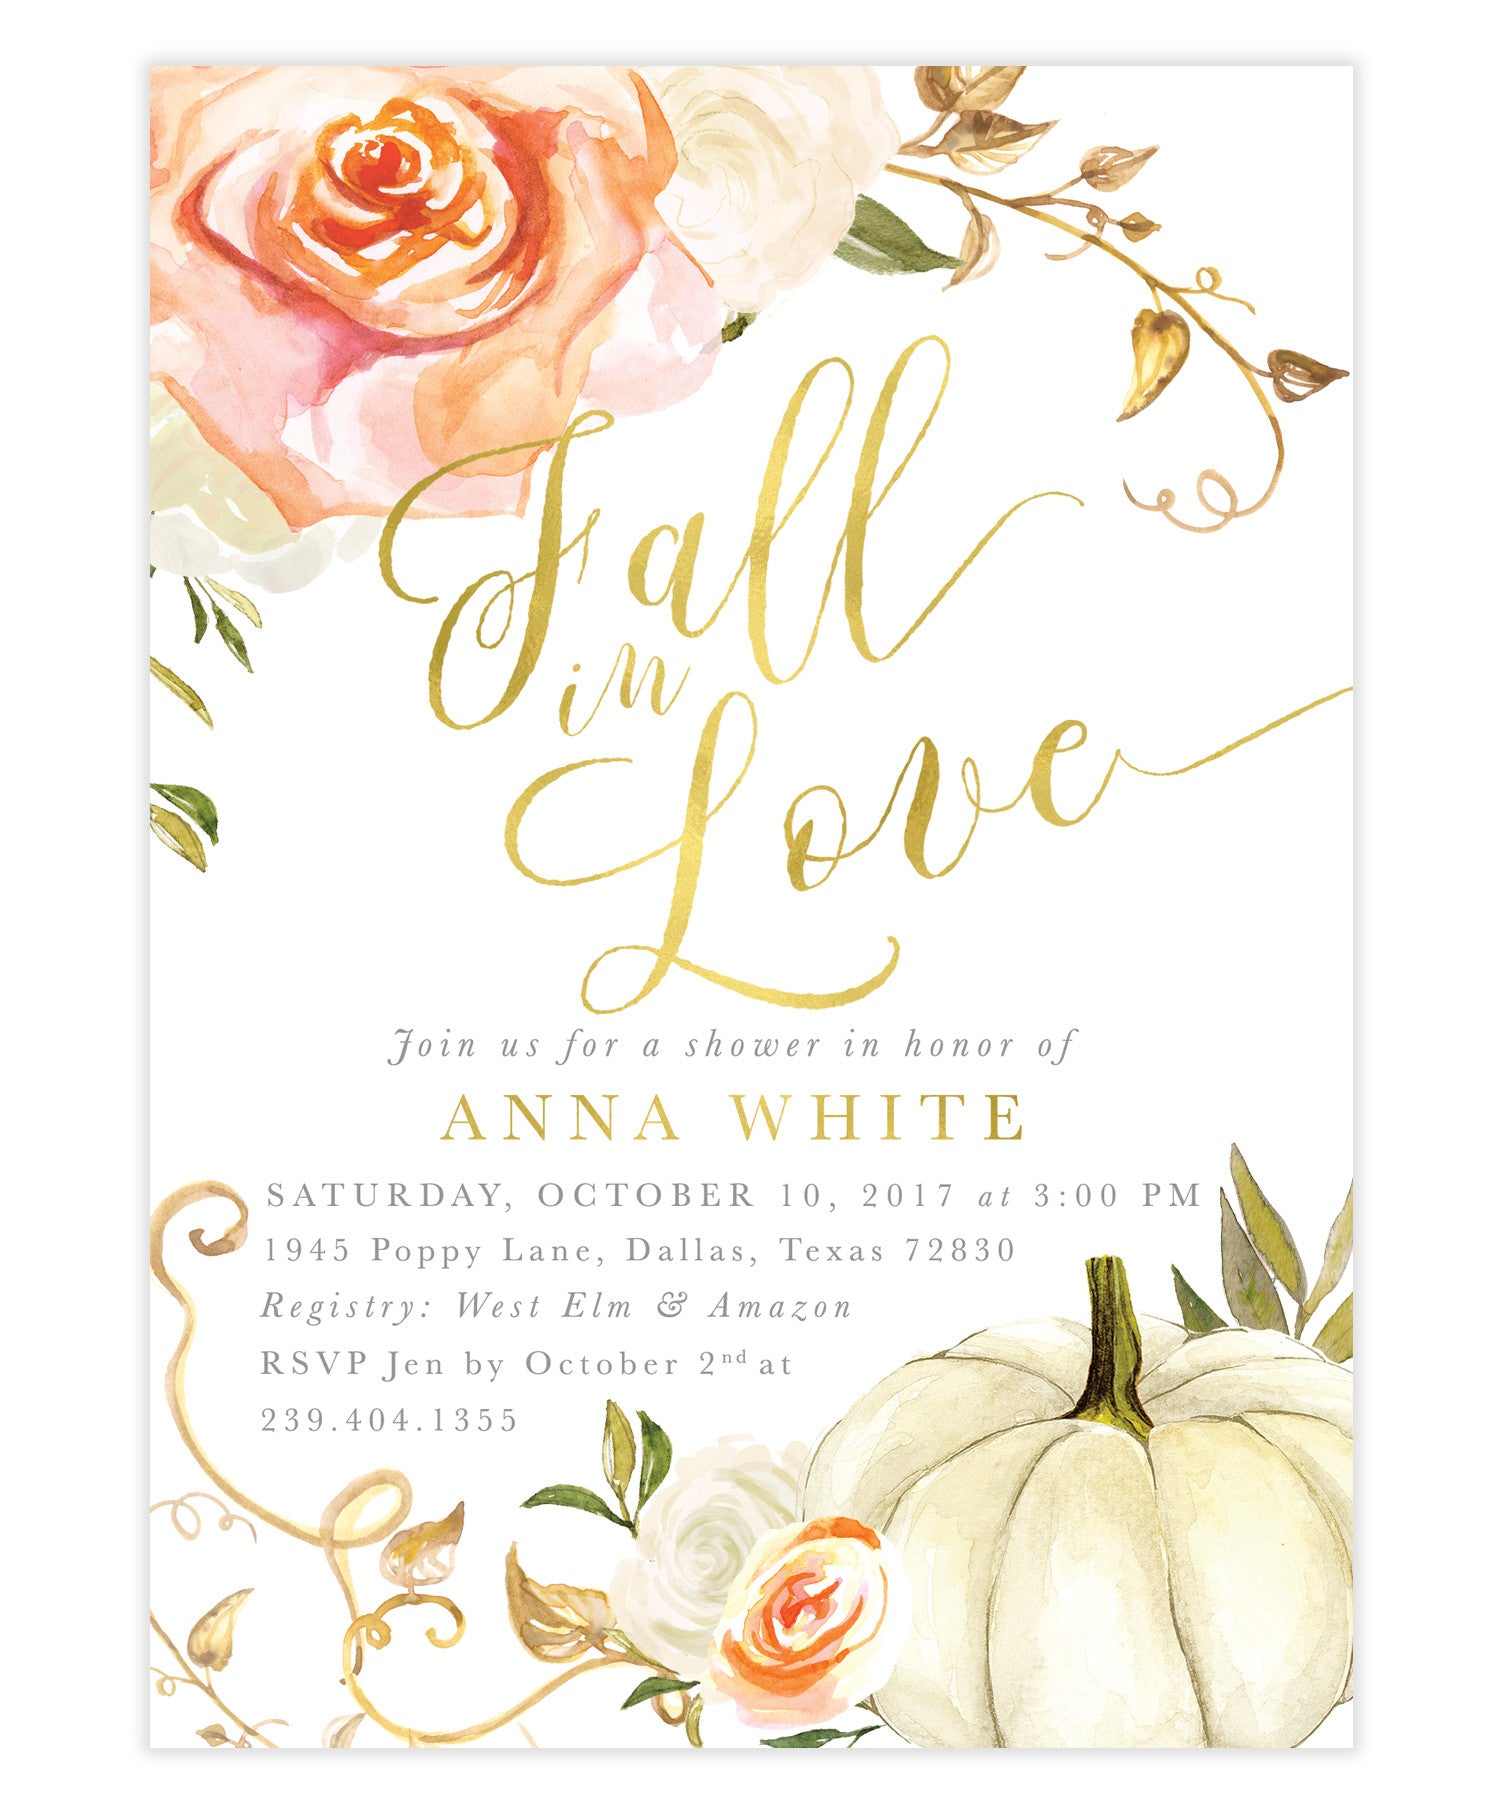 Fall In Love Bridal Shower Invitation: Orange White Rose Florals ...